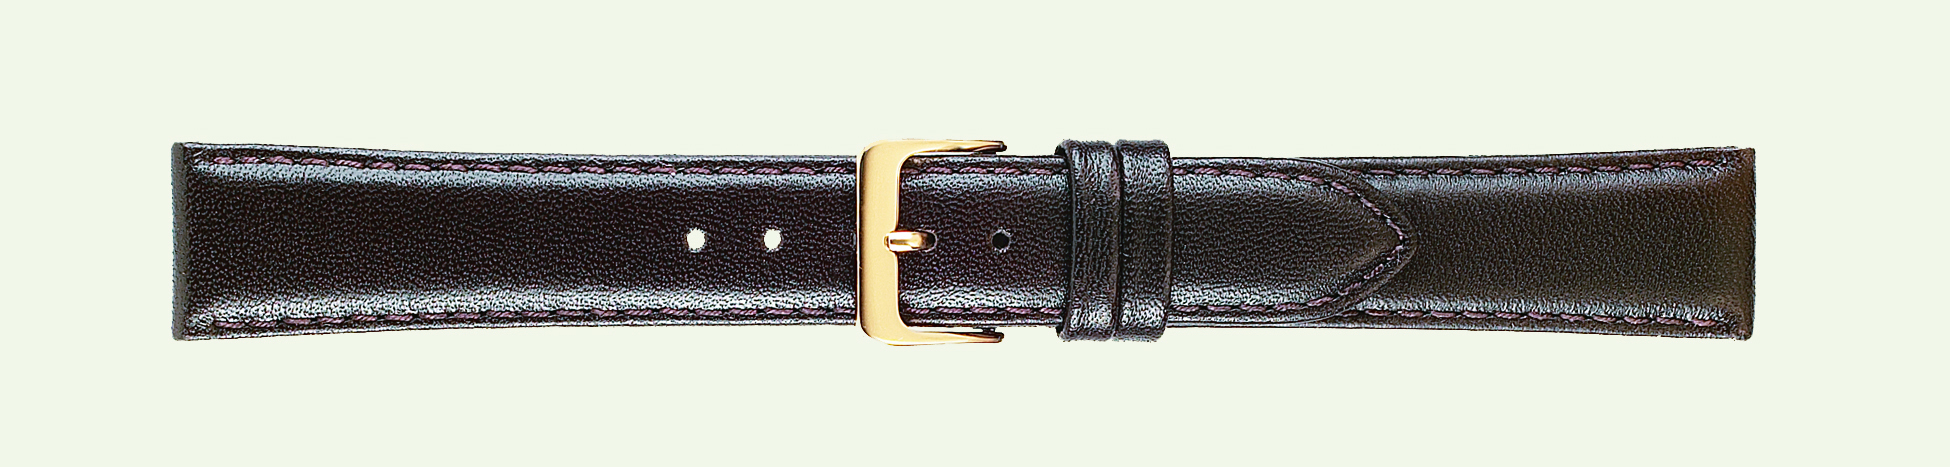 21MM Leather Band Brown Classic Calf- Closeout!!-0